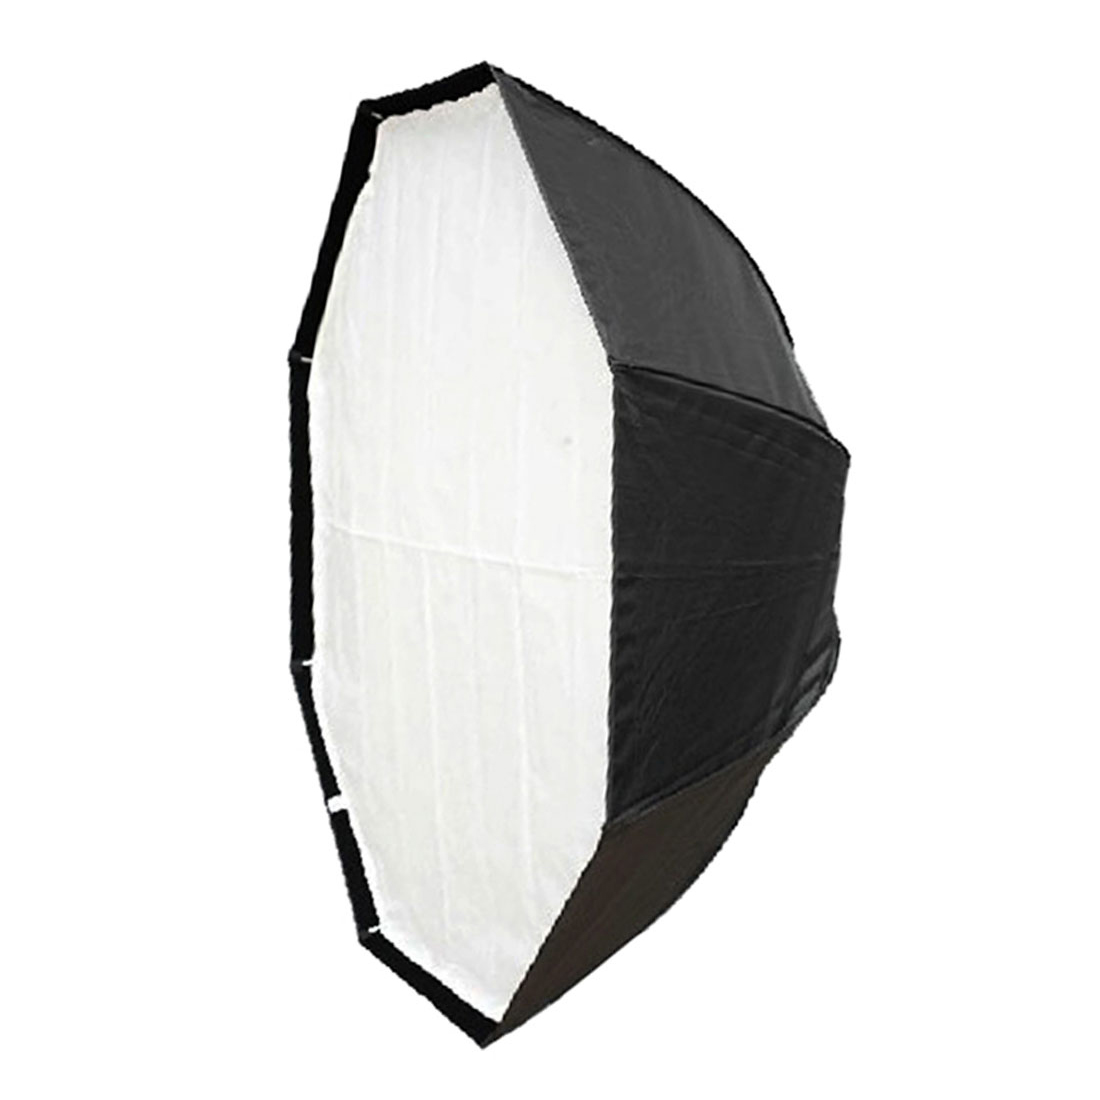 120cm Black Silver Tone Umbrella Studio Flash Light Soft Box Diffuser Reflector